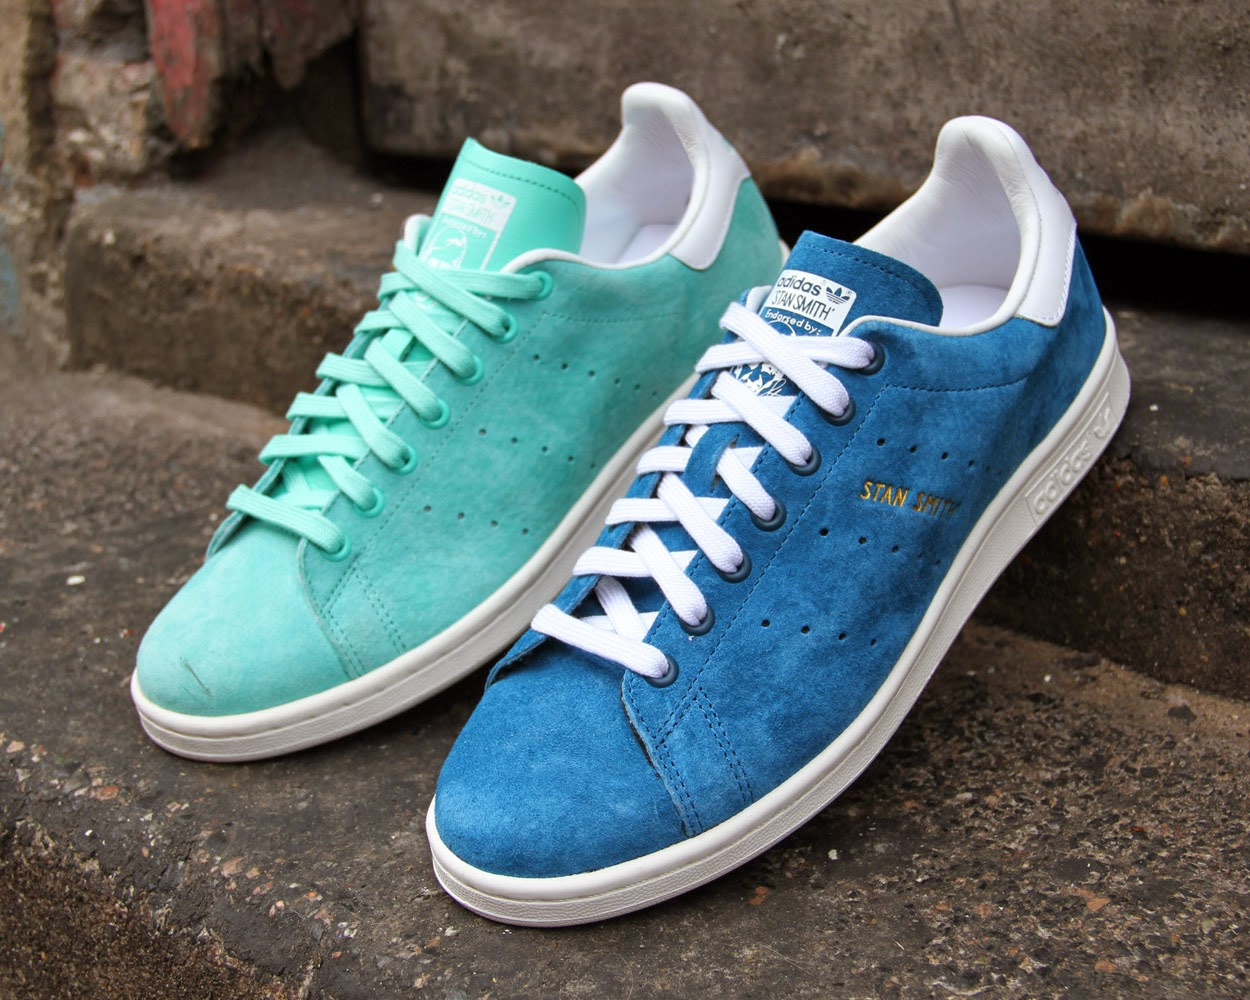 new concept 1f7db 05c67 Adidas Stan Smith Daim - Vert Pastel